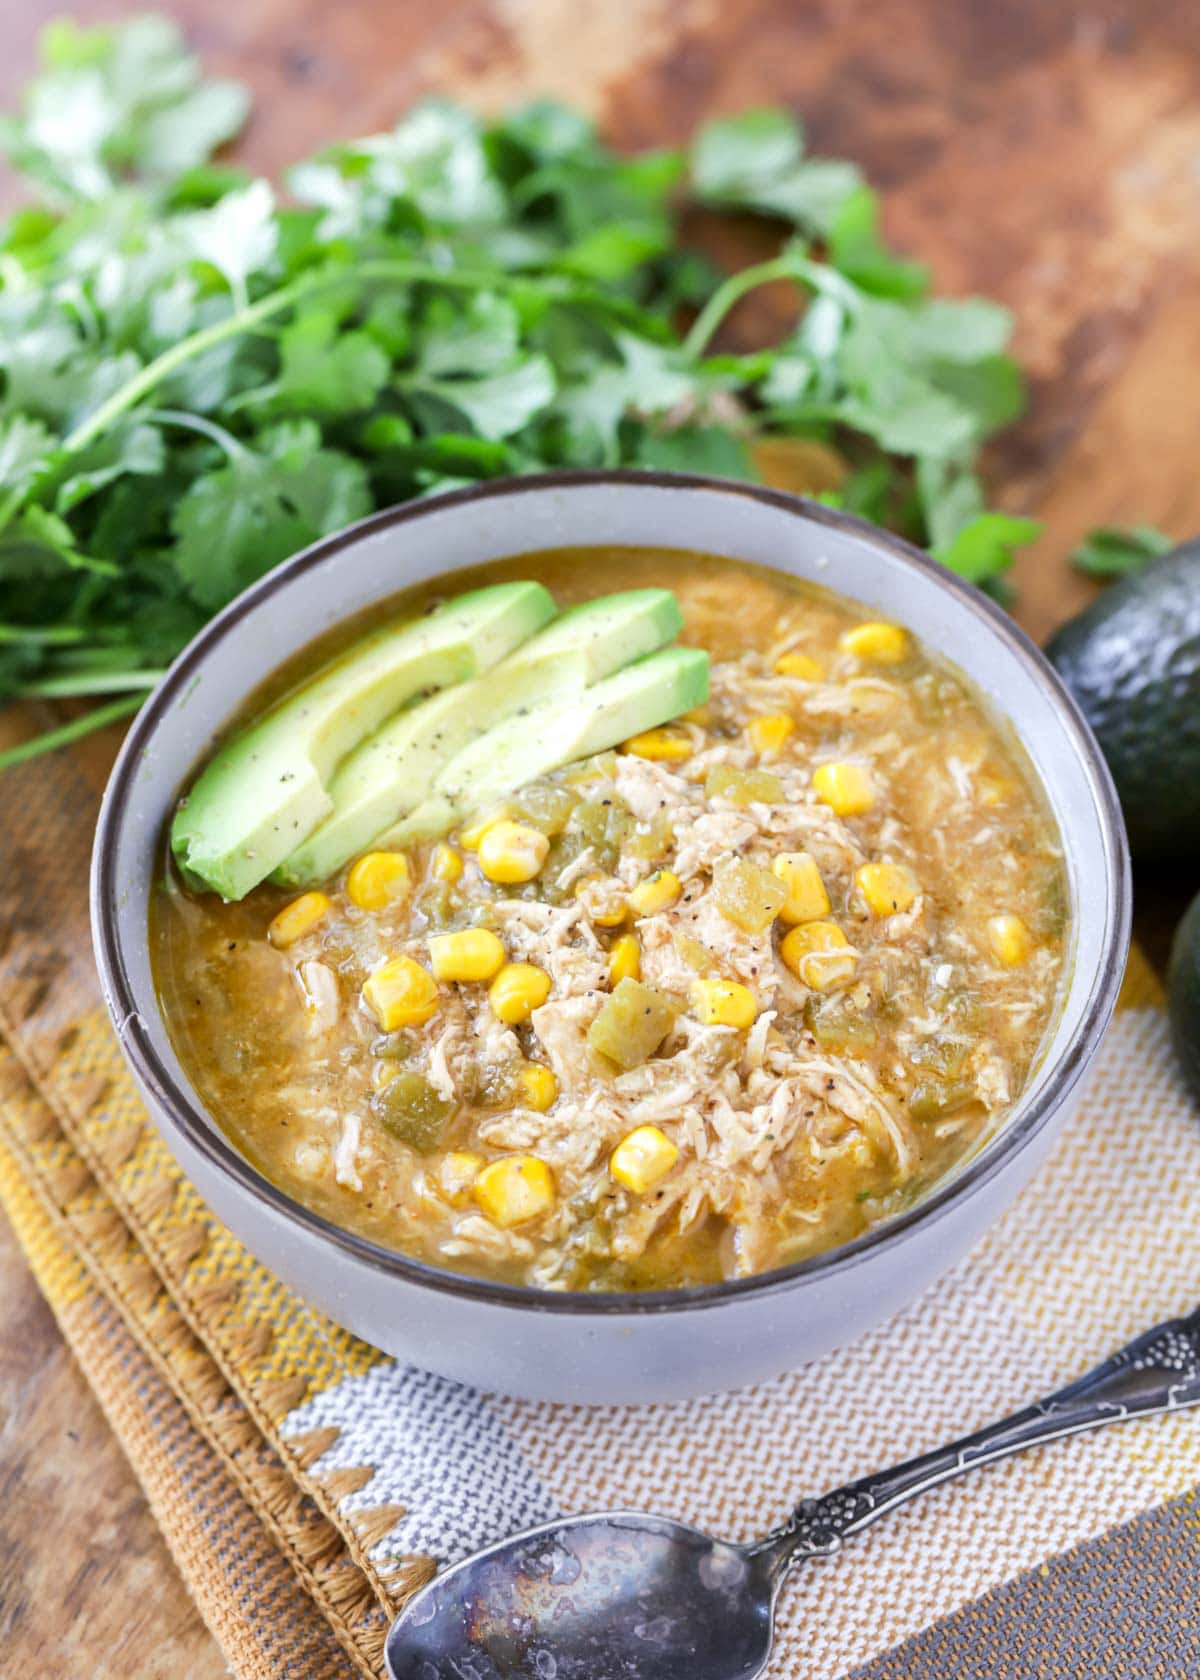 Green Chili Soup recipe with sliced avocados on top